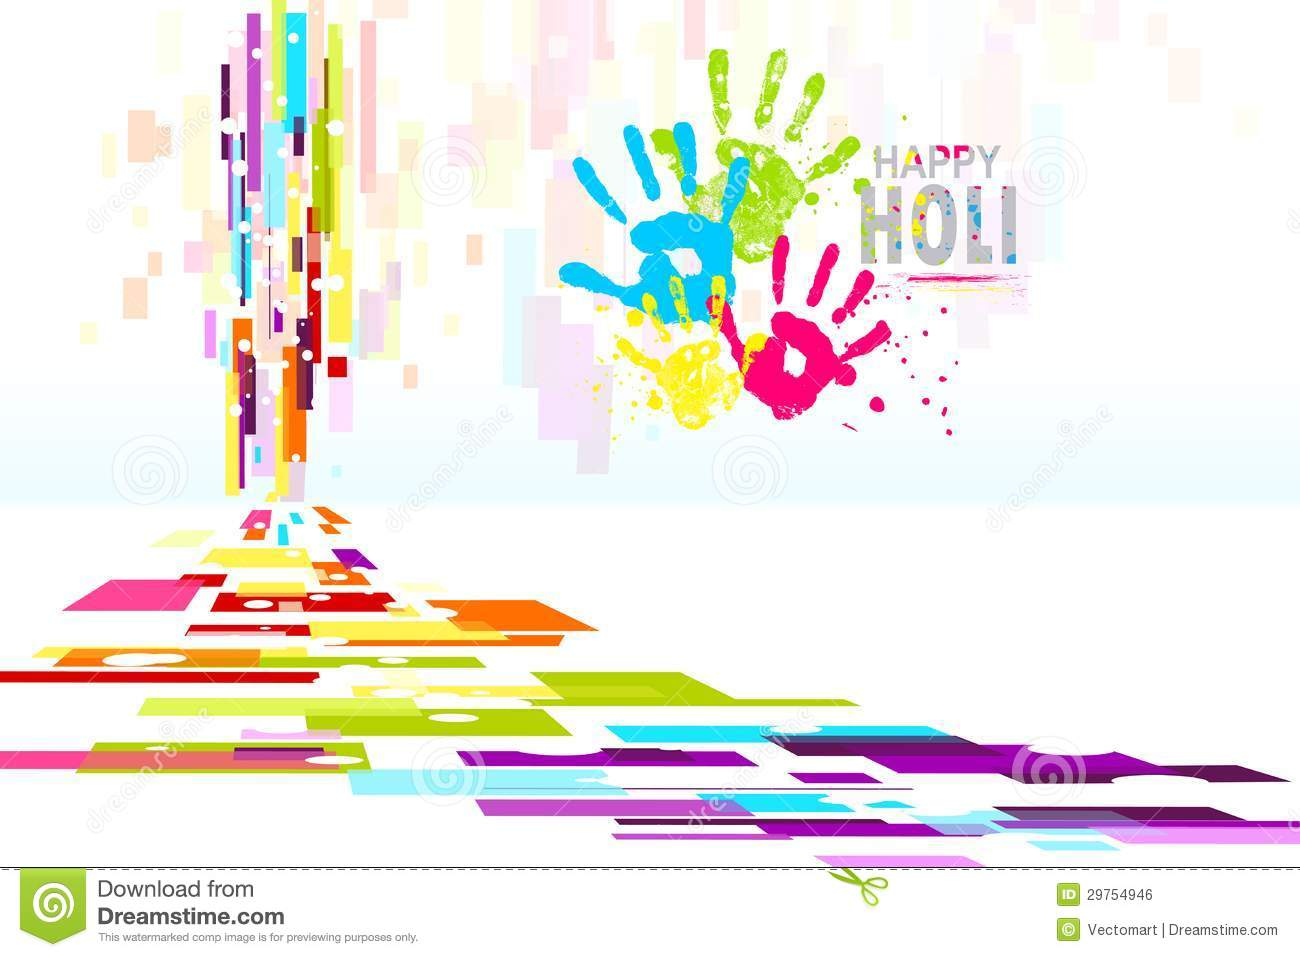 Holi Wallpaper Holi Wallpaper